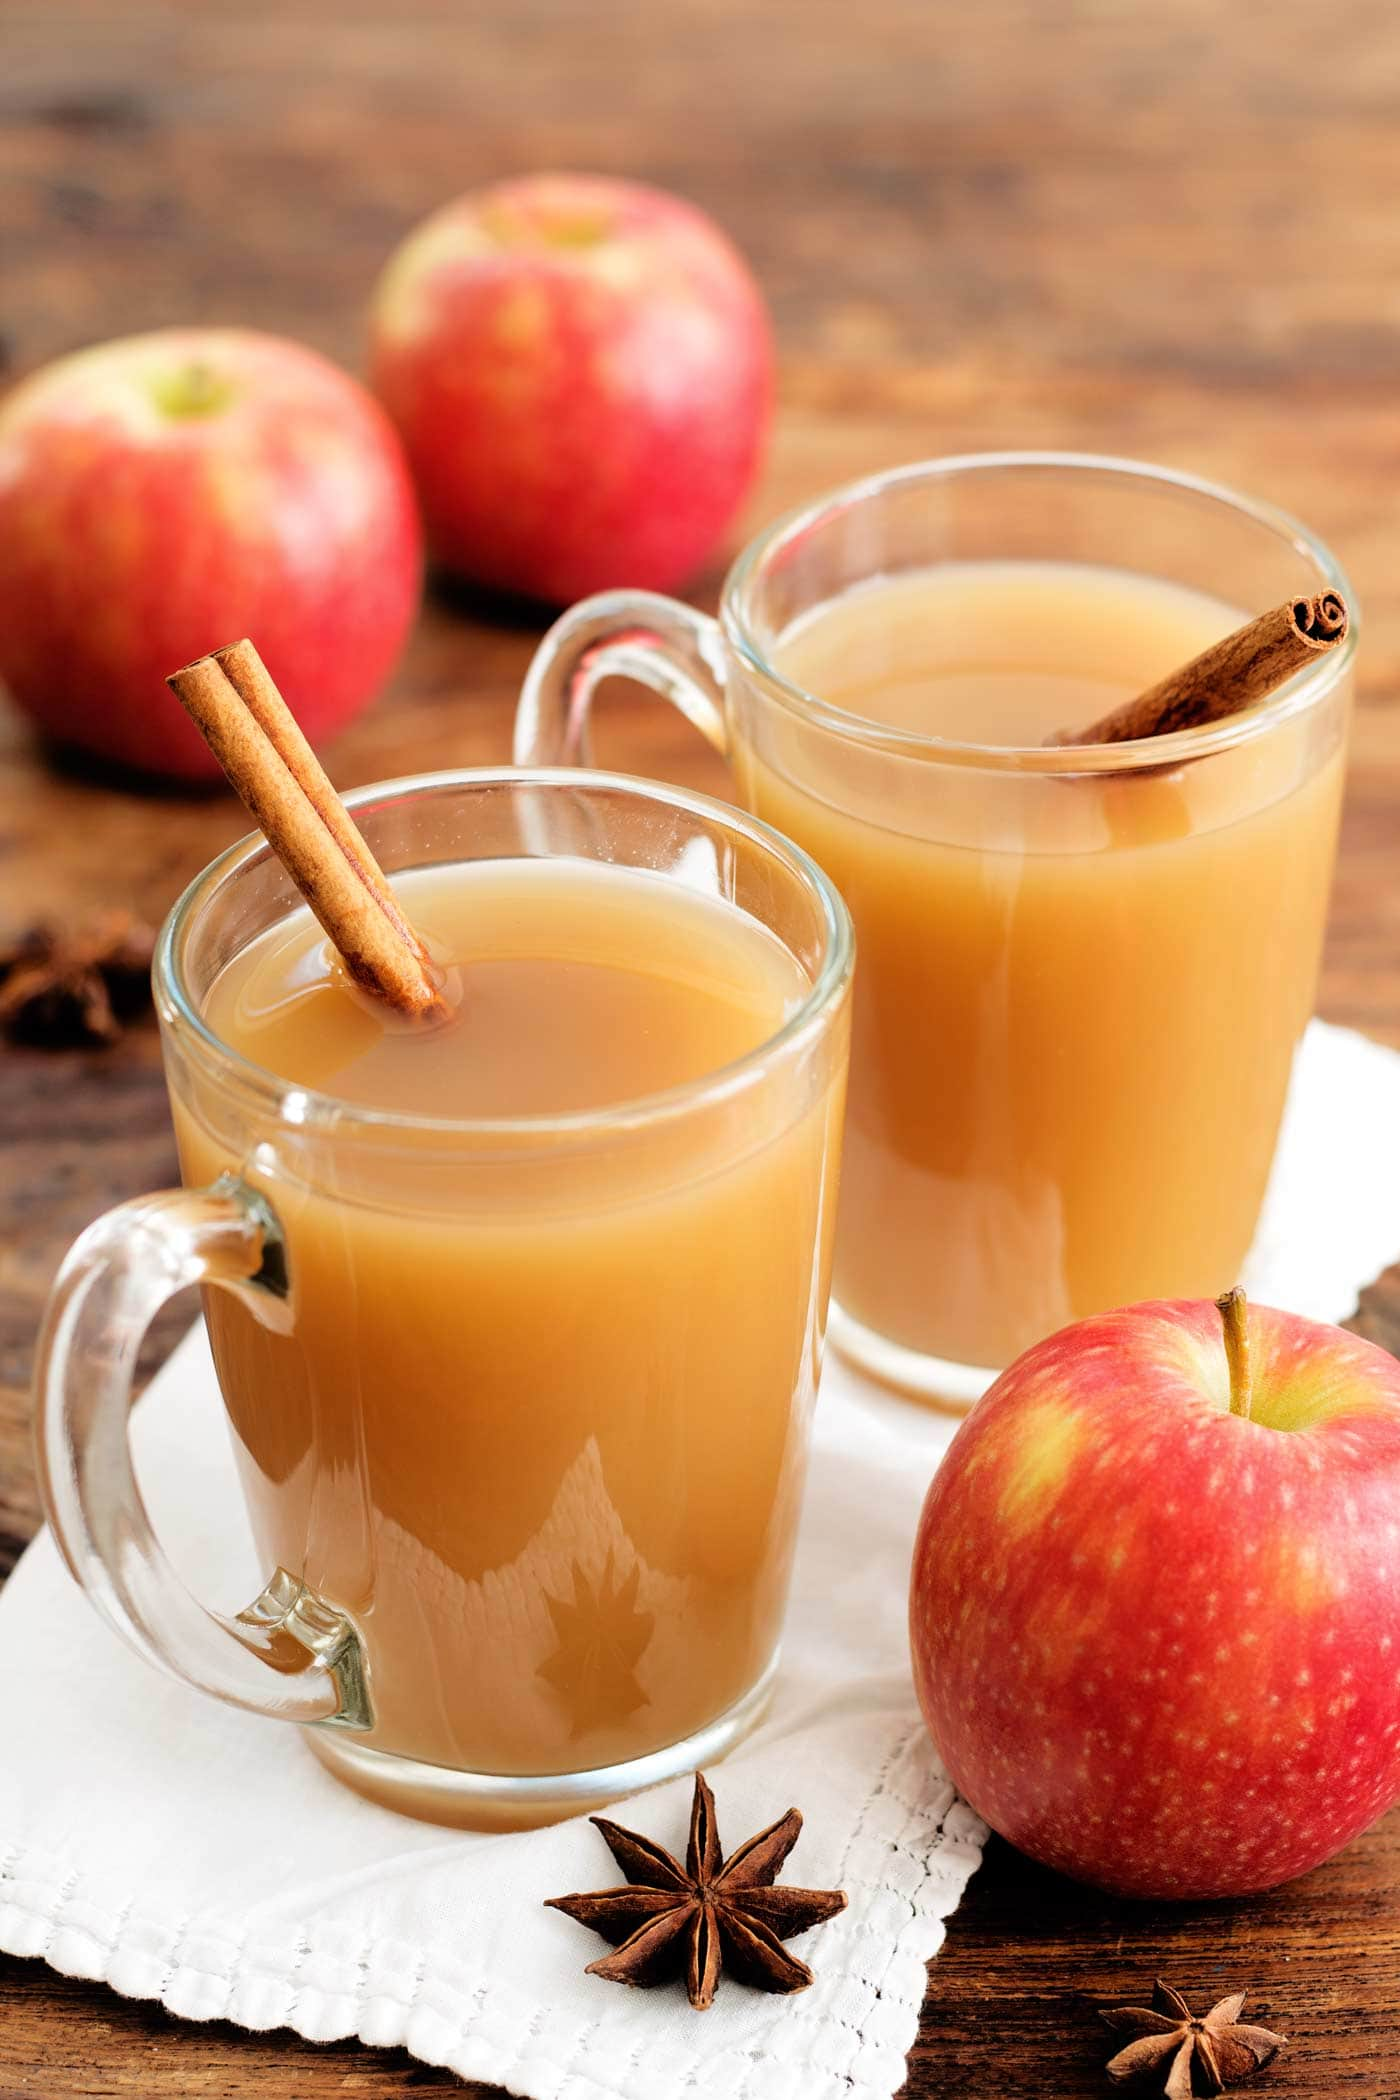 Easy Crock-pot Apple Cider